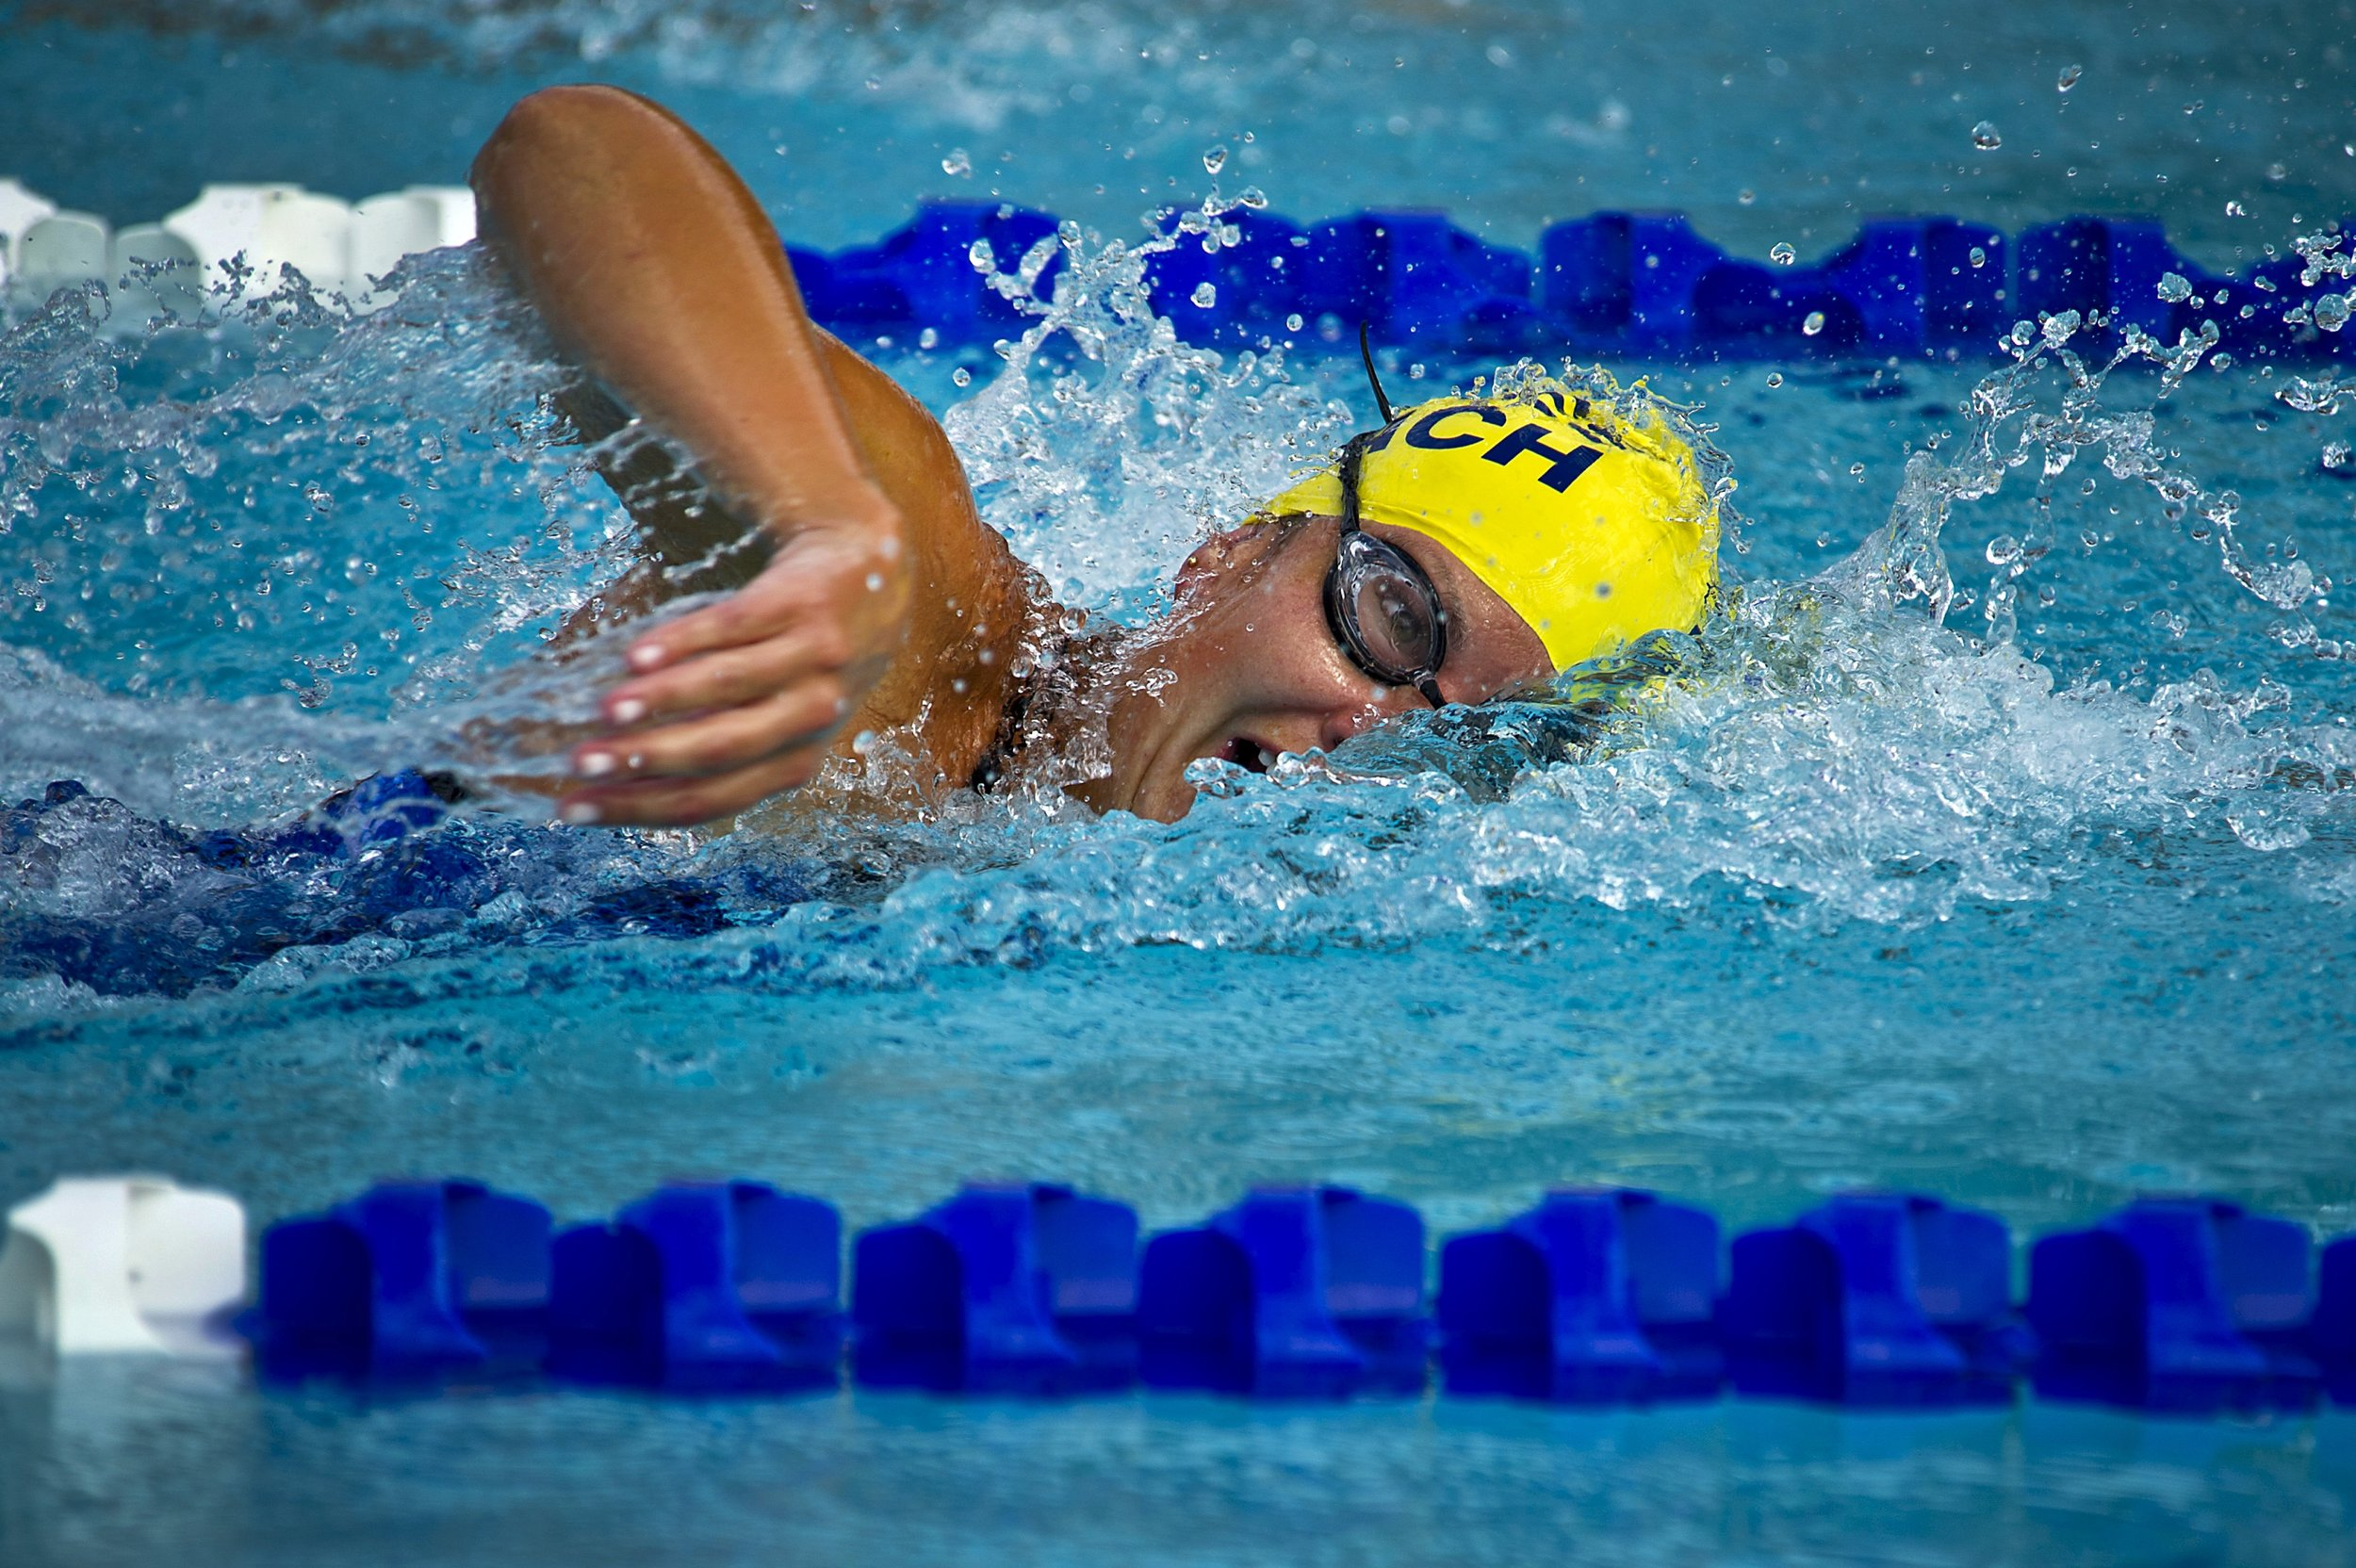 swimming performance enhancement